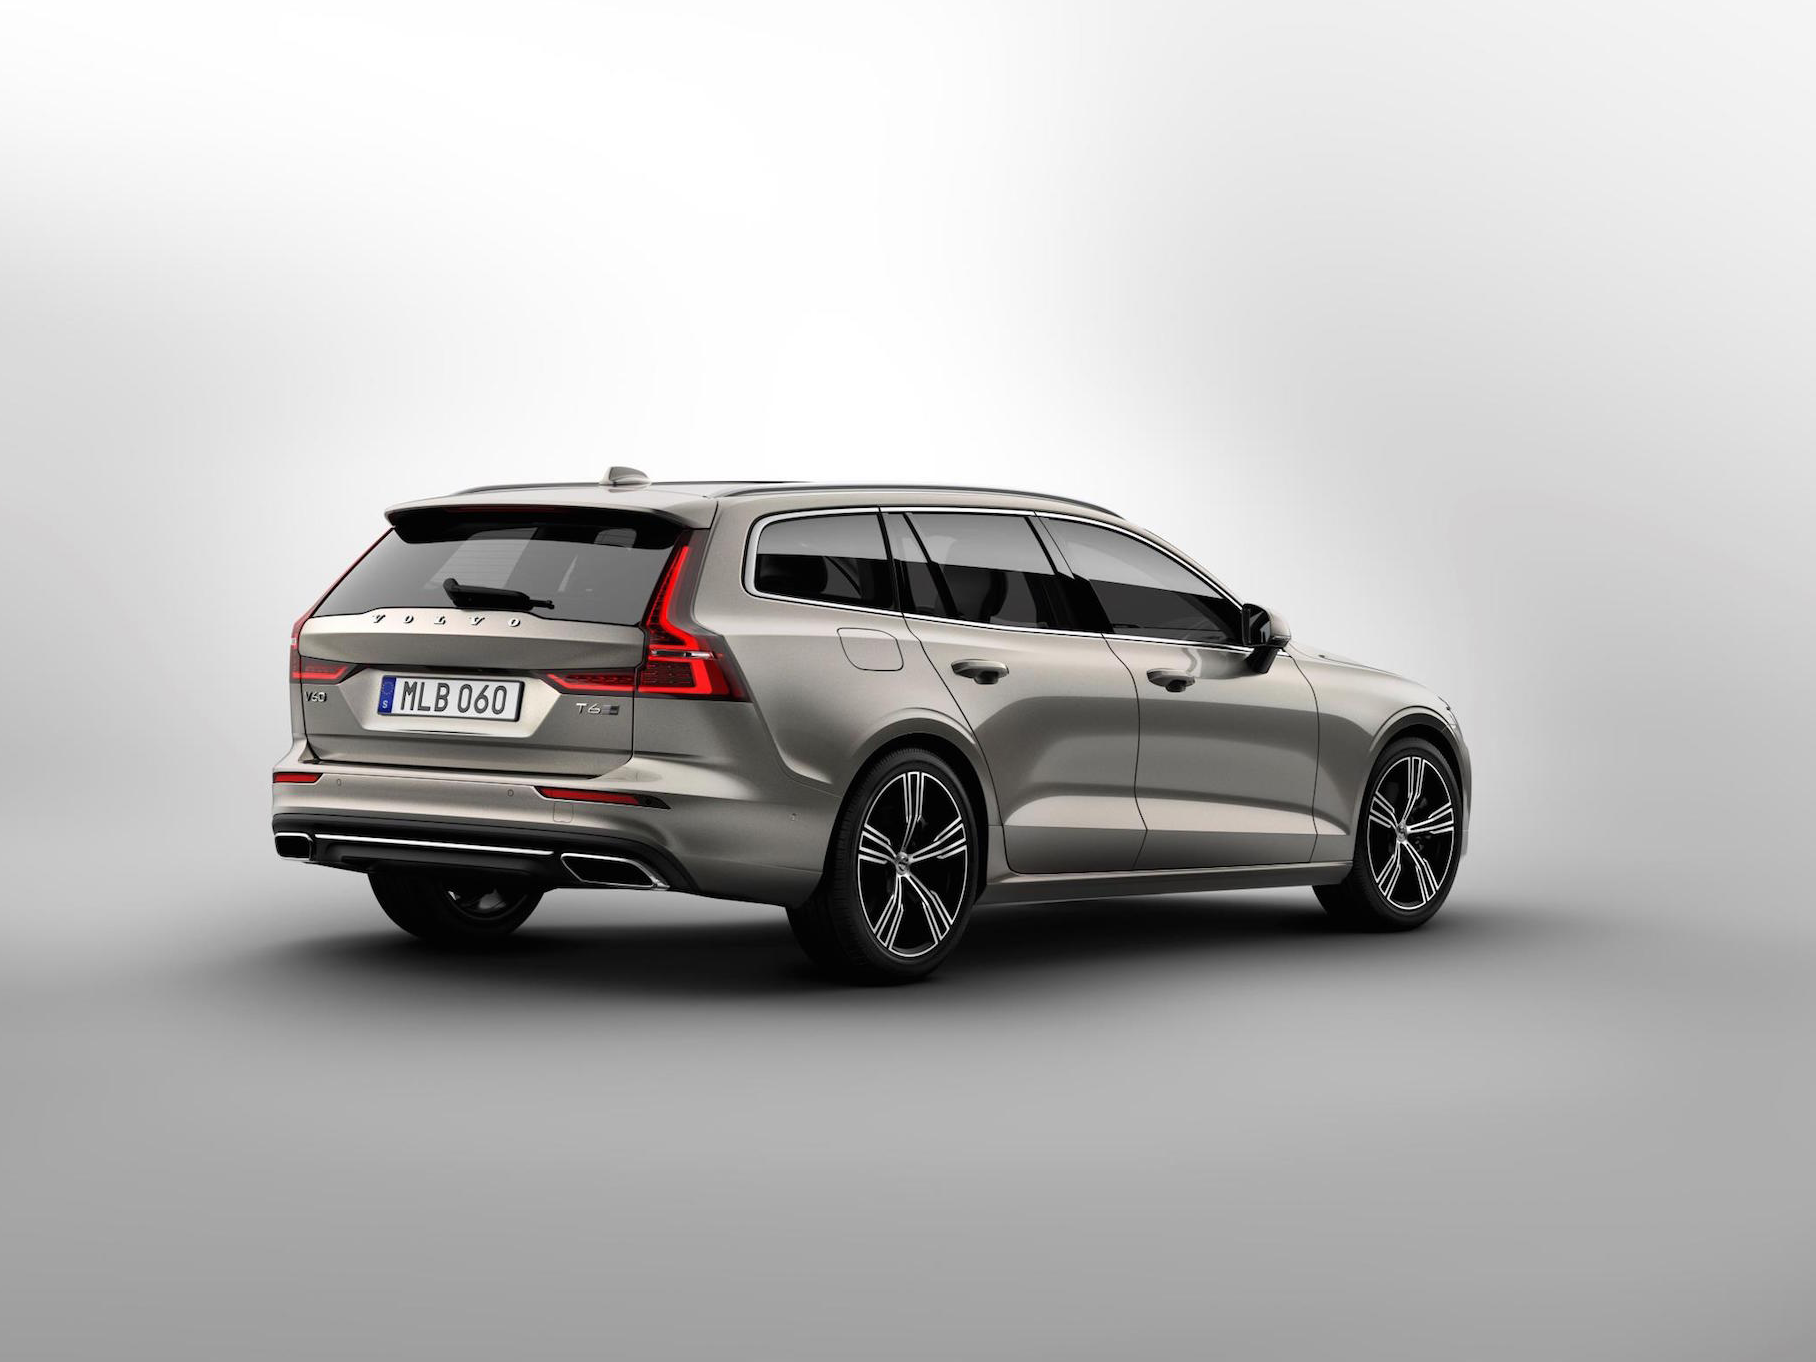 Volvo's V60 new station wagon is simply stunning